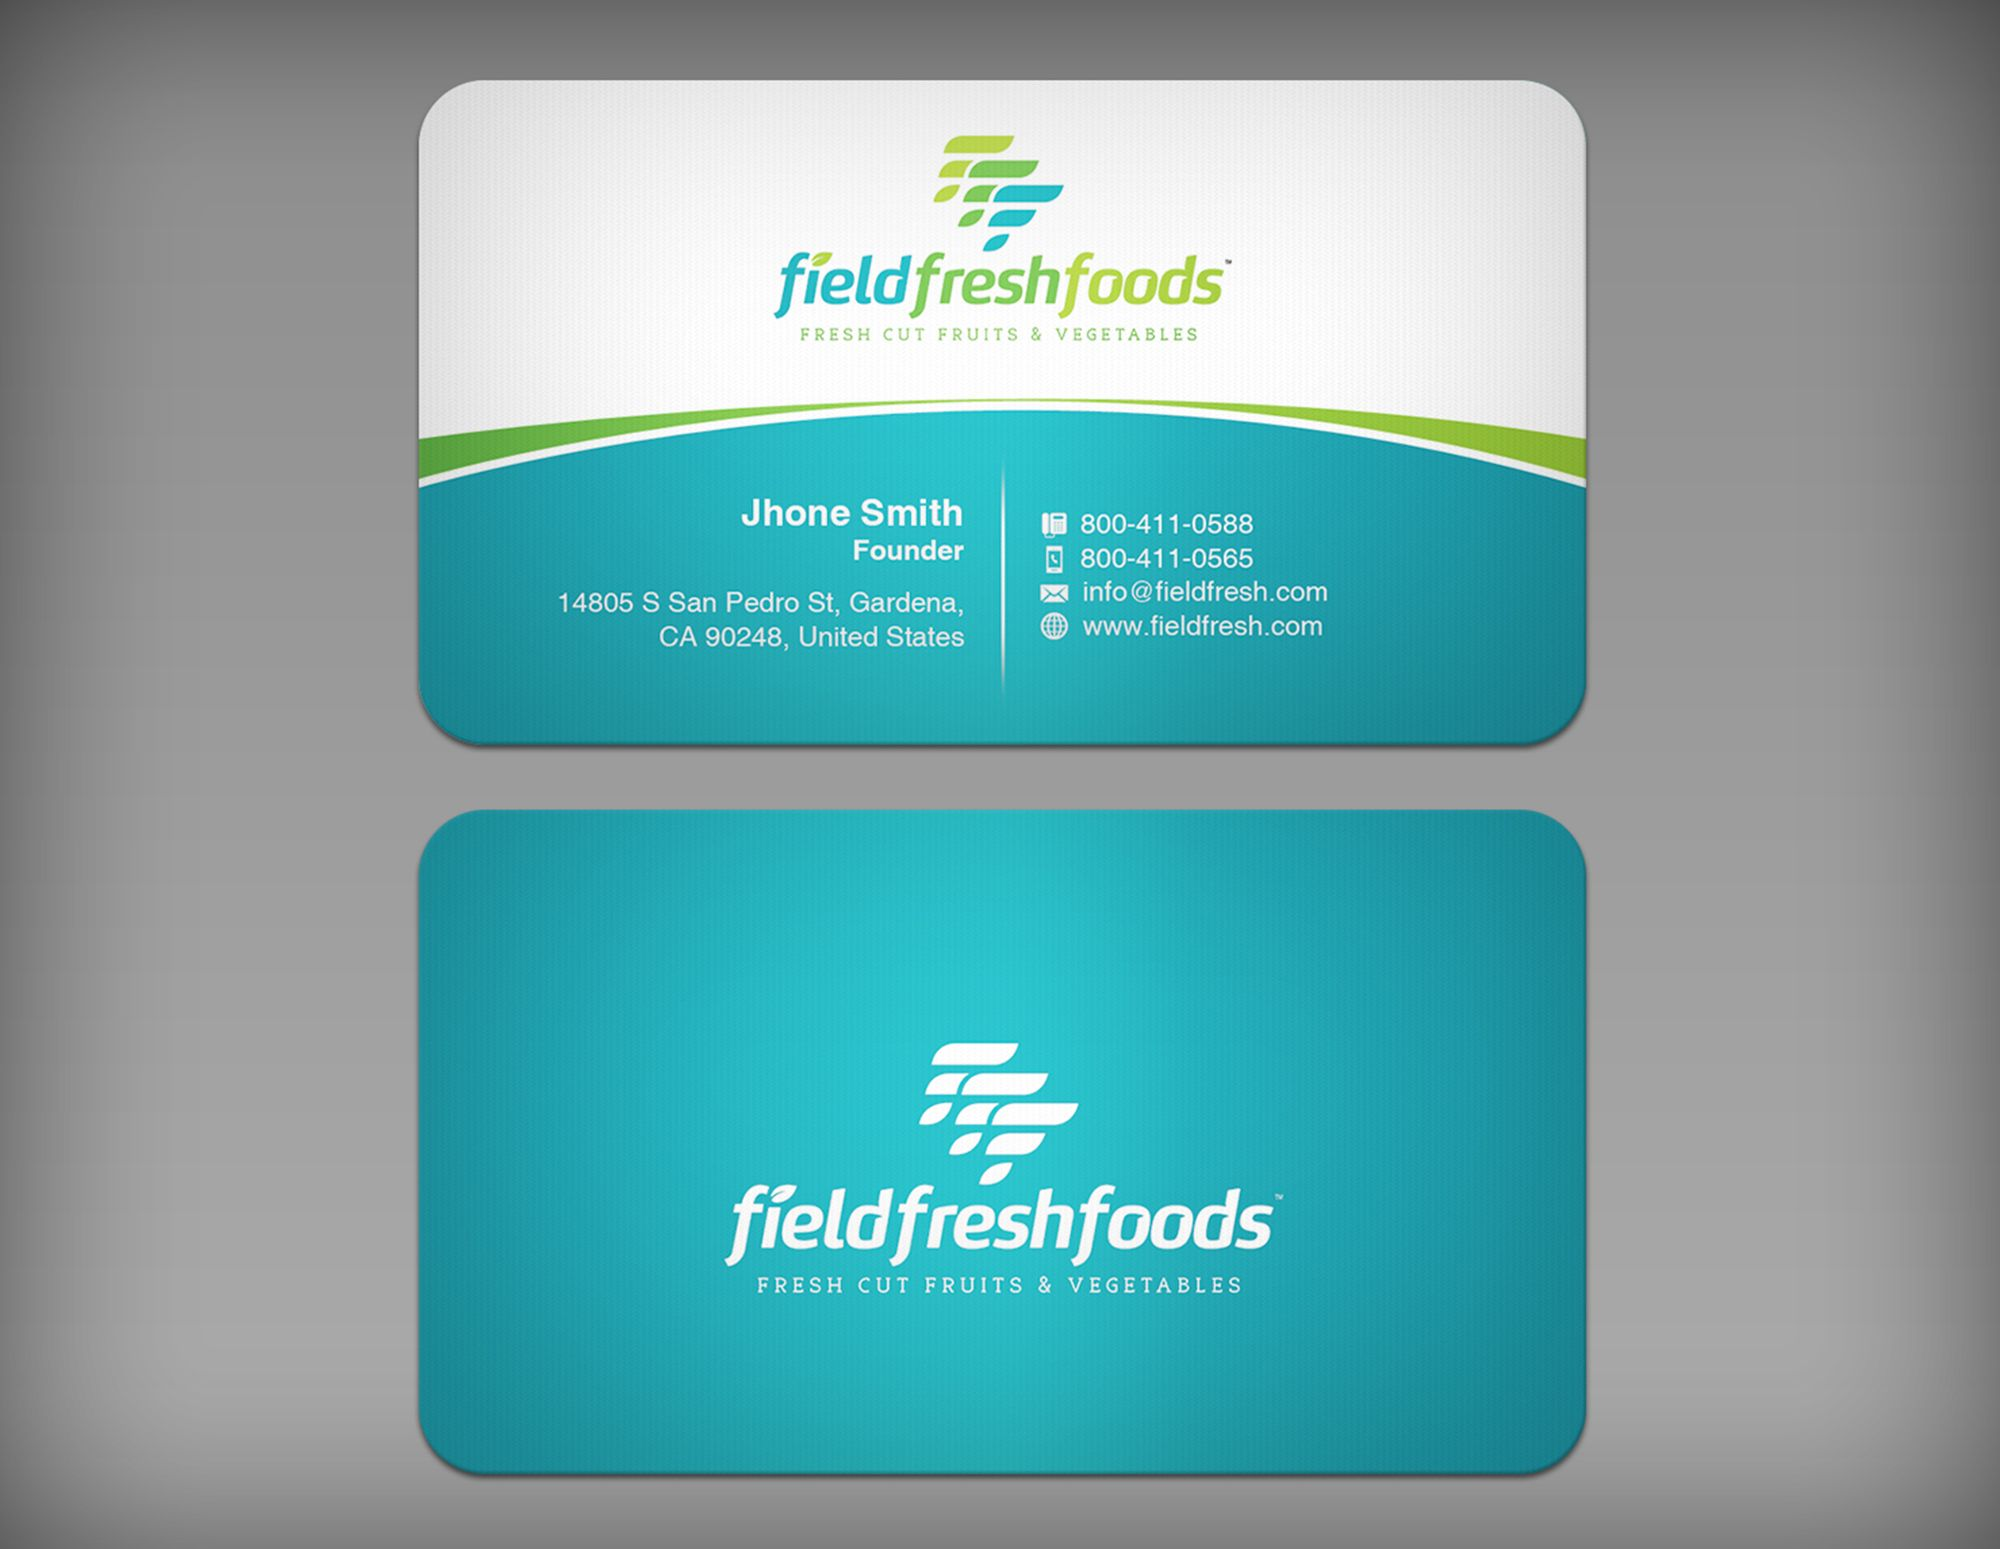 Imamhasan03 I Will Provide Professional Business Card Design For 5 On Fiverr Com Professional Business Cards Business Card Design Business Cards Creative